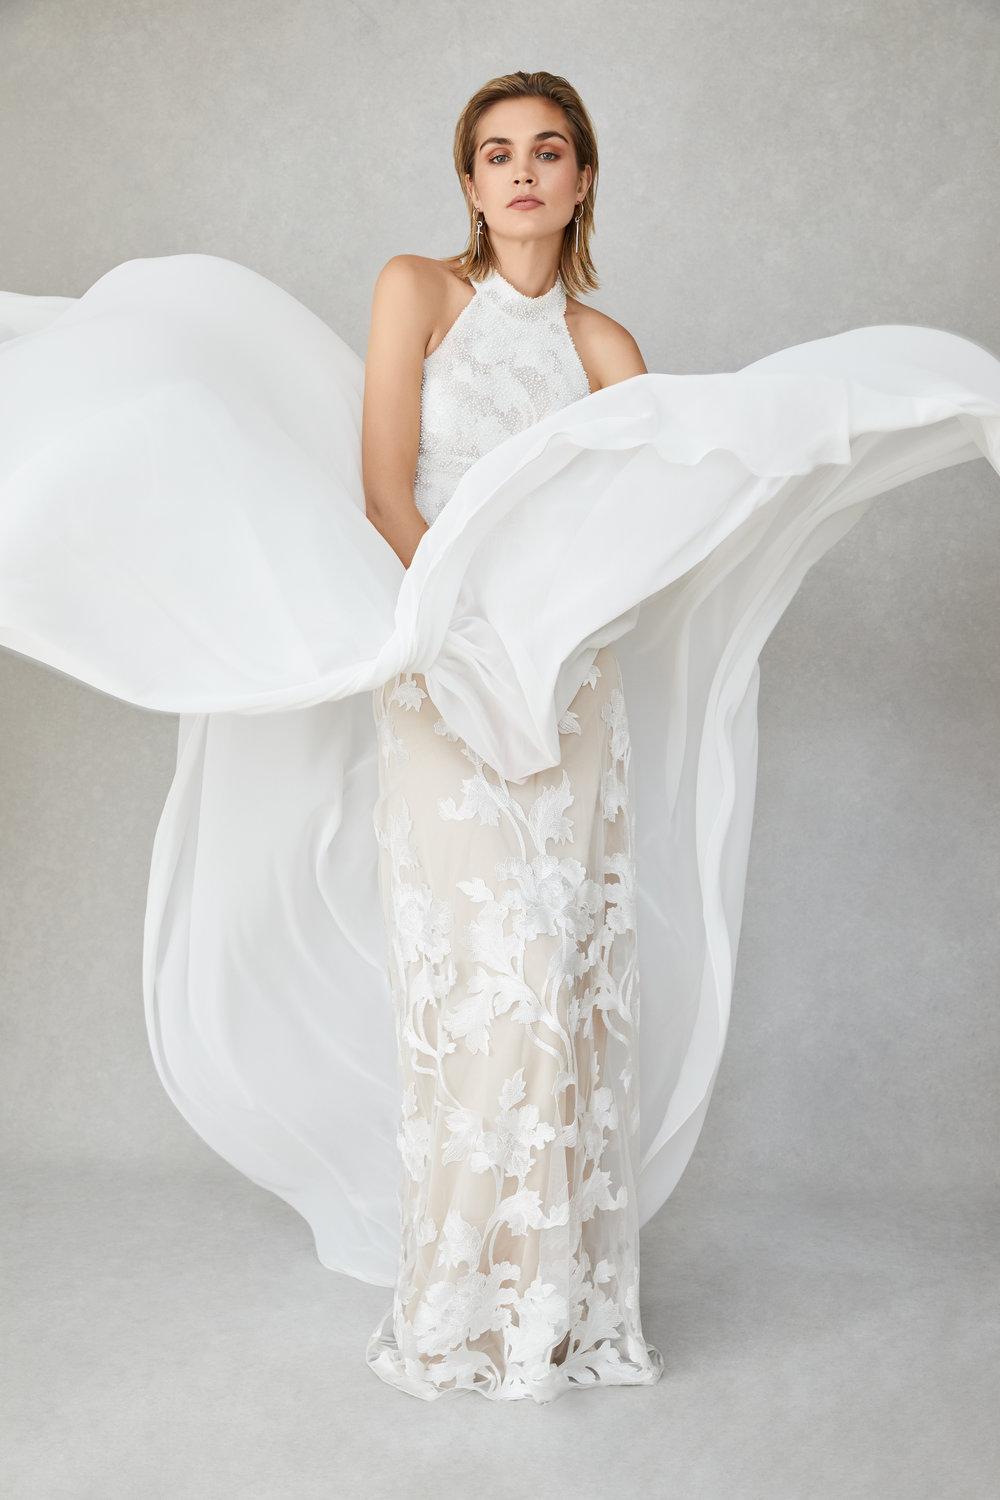 Sell Your Dress With Our Story Bridal: Selling Your Wedding Dress At Reisefeber.org